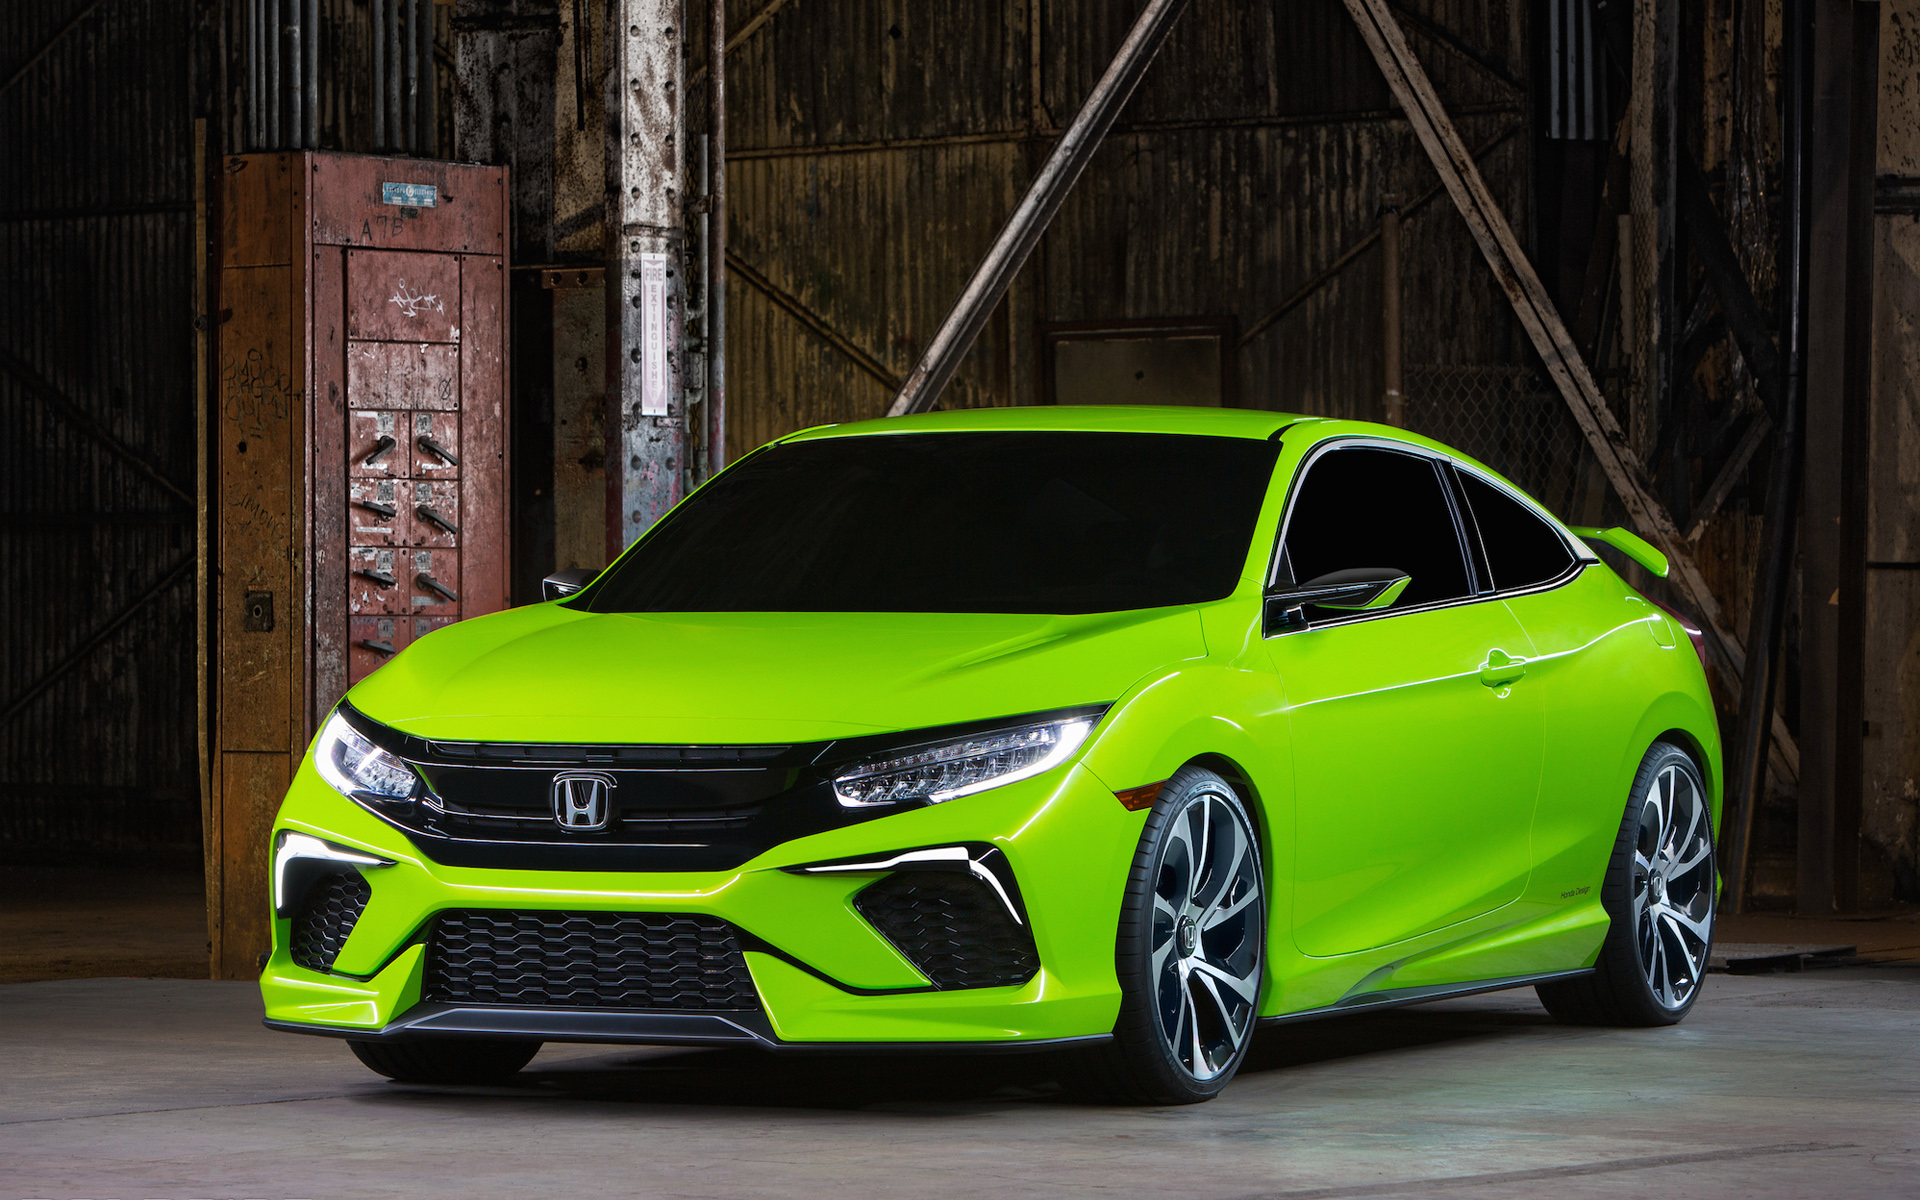 2015 honda civic concept wallpaper | hd car wallpapers | id #5280